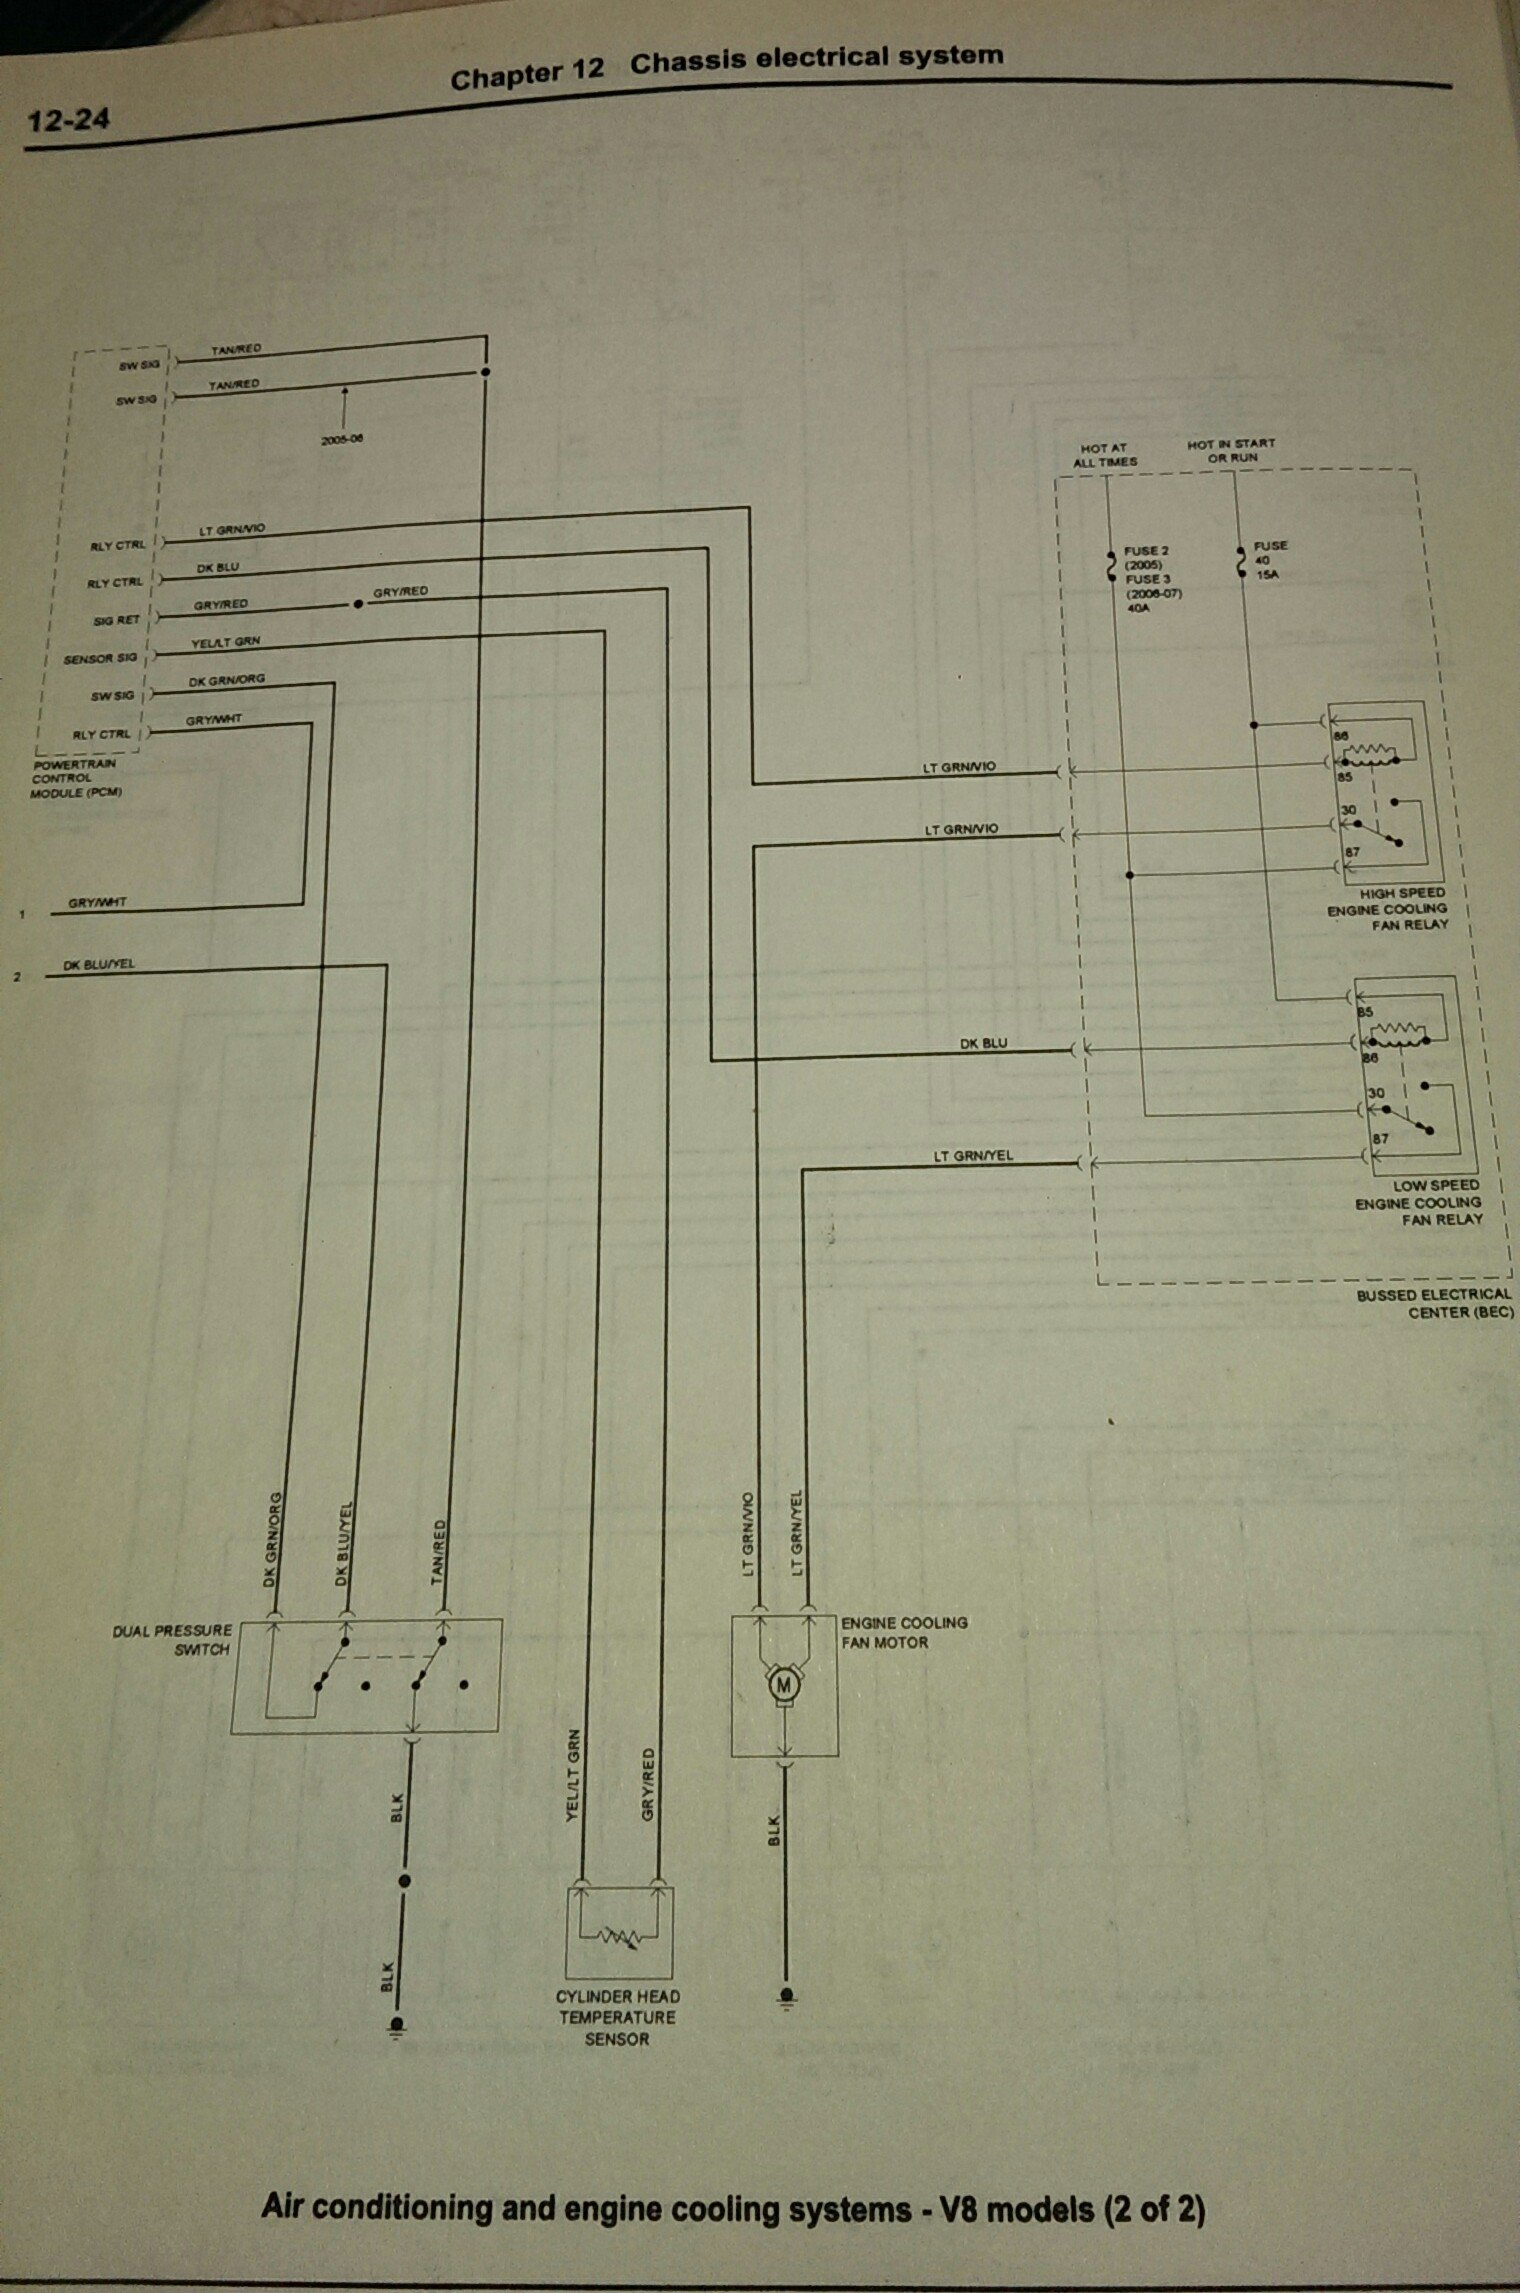 2005 Dodge Ram Fan Clutch Wiring Harness Wiring Diagram Wiring